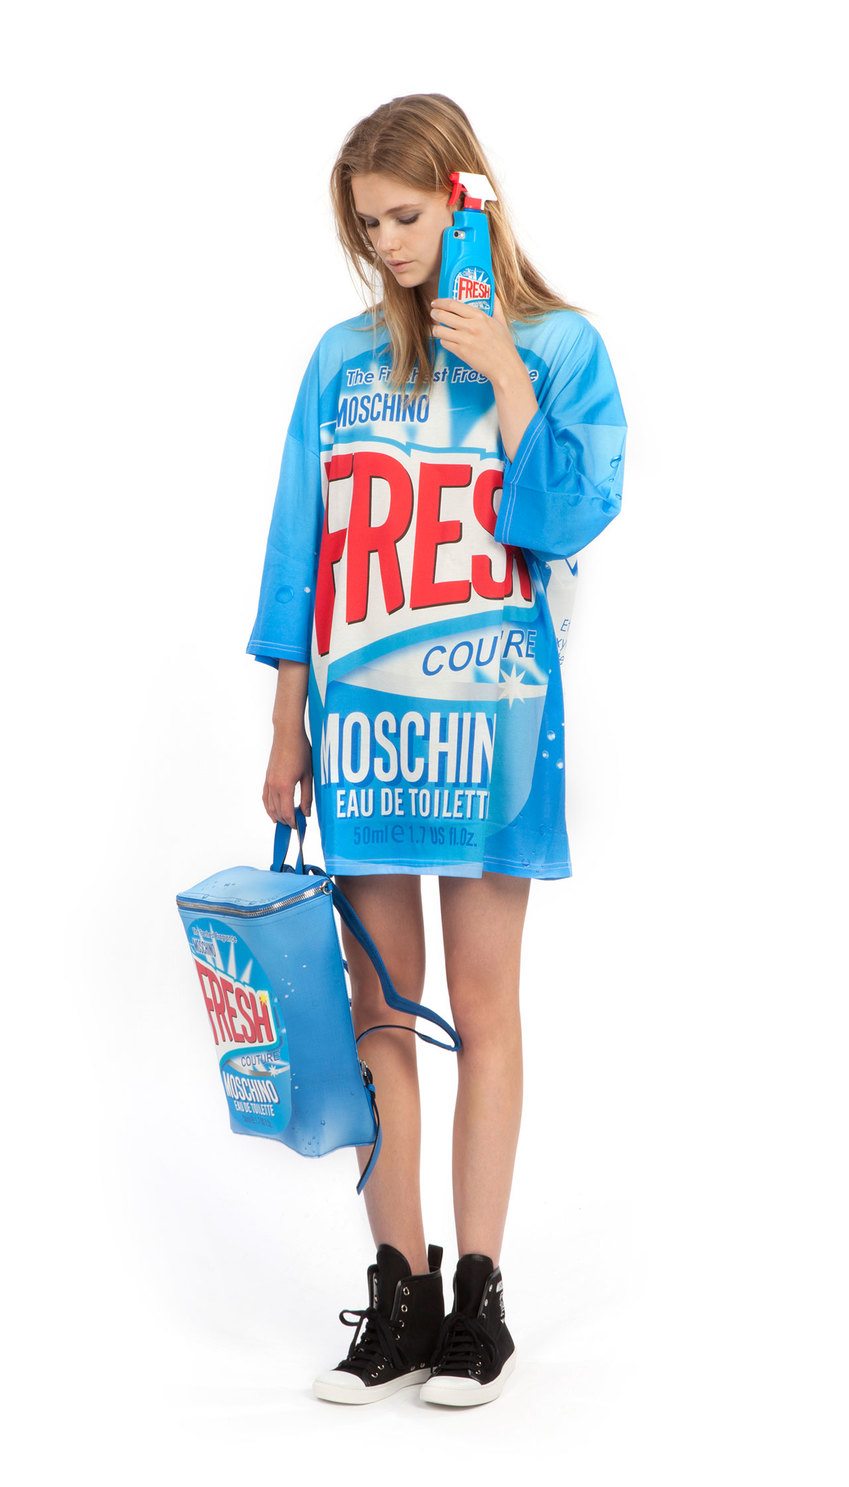 moschino_fresh_fragrance_i_phone.jpg